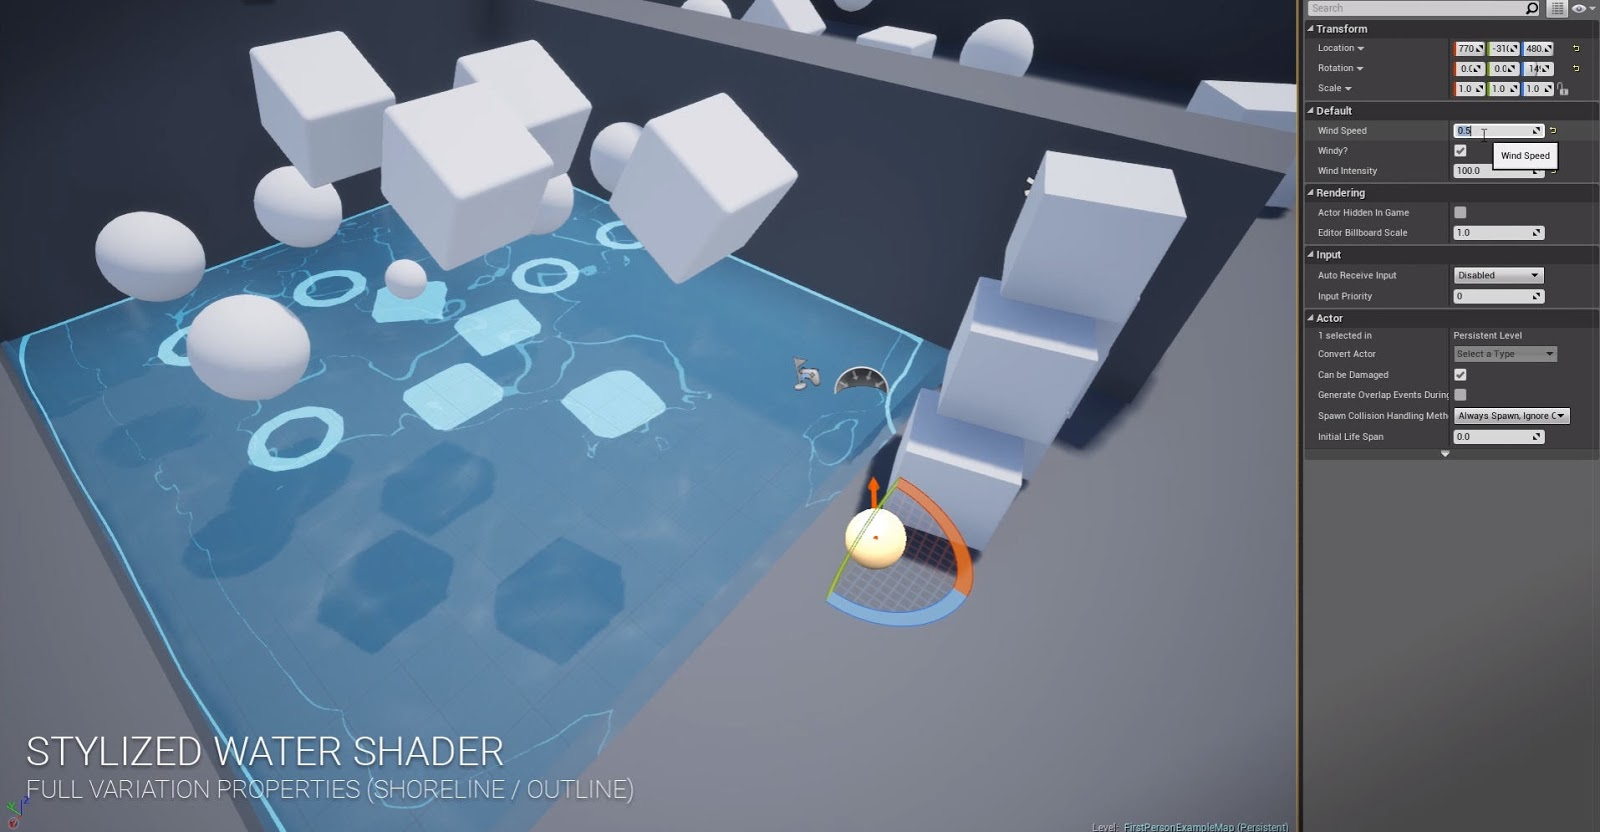 Stylized Water Shader for Unreal Engine 4 | Computer Graphics Daily News